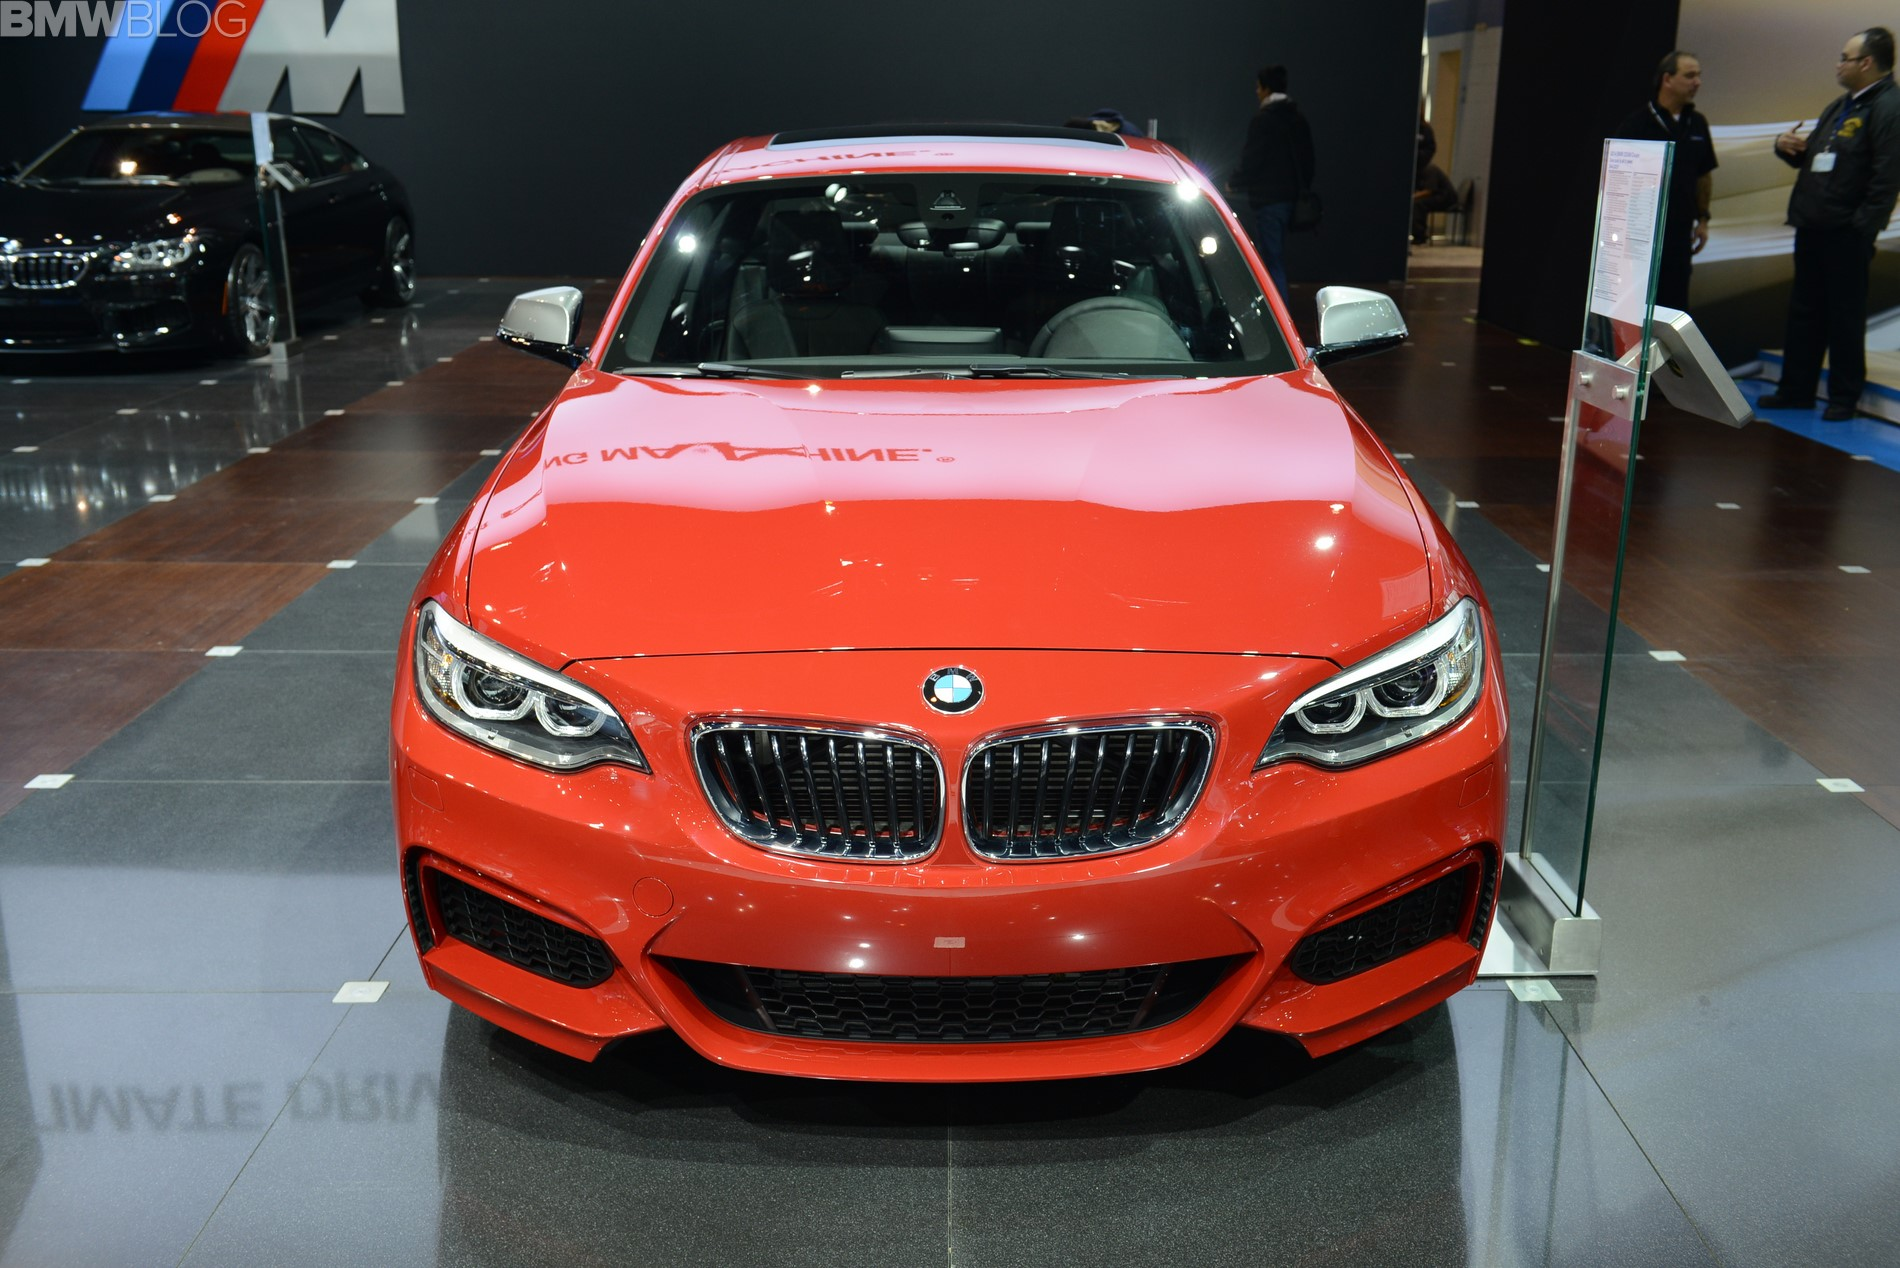 2015 bmw m235i chicago auto show 04